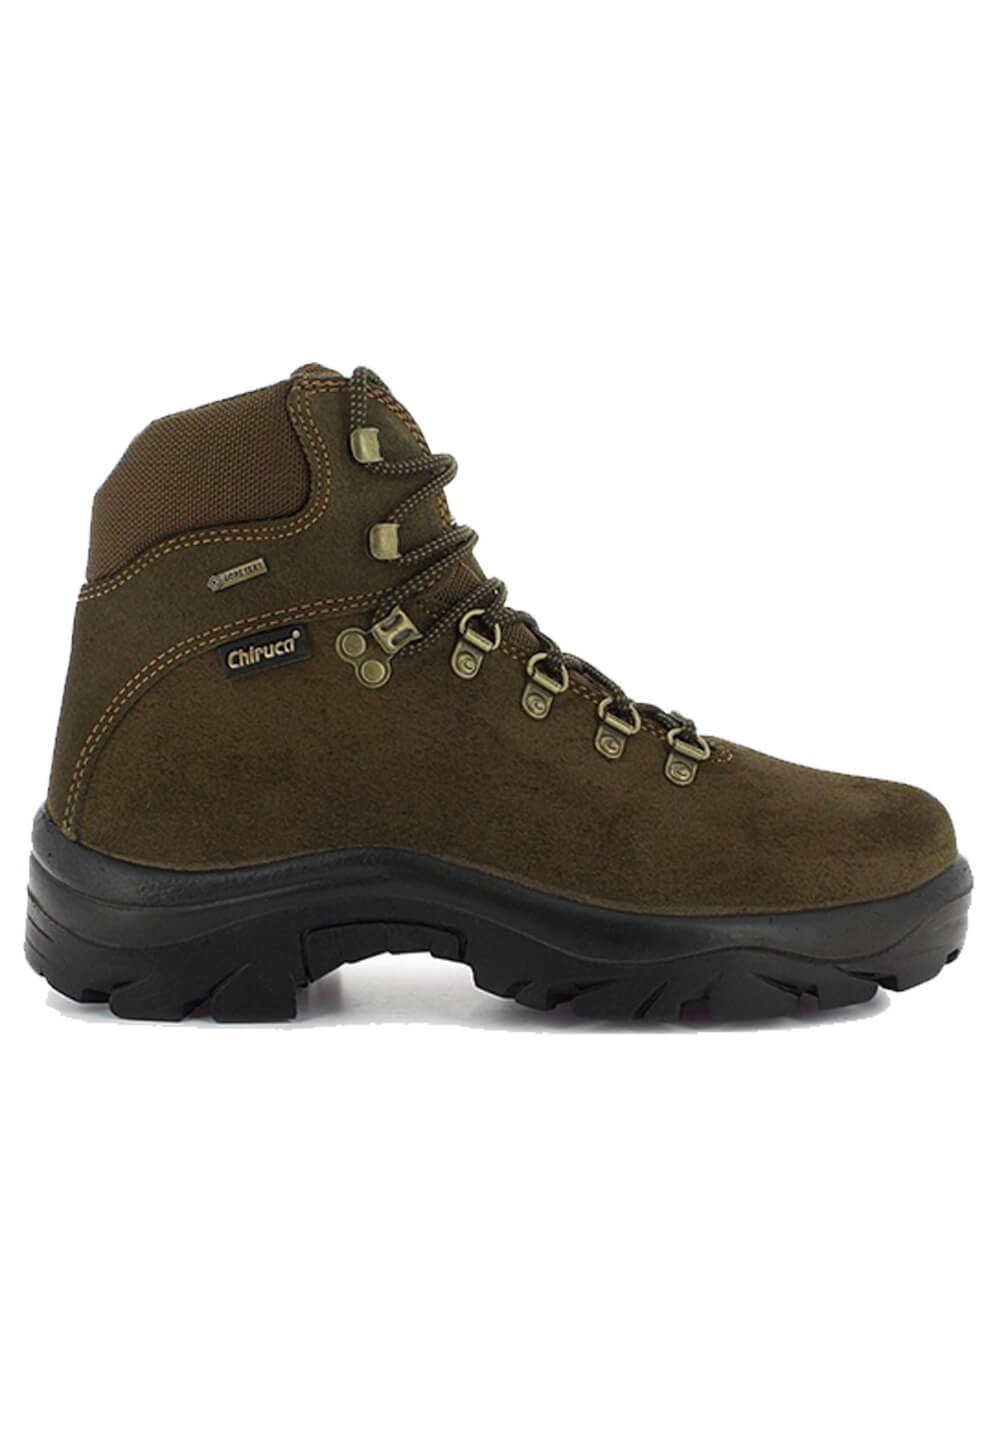 Chiruca - CHIRUCA POINTER 01 GORE-TEX - 114